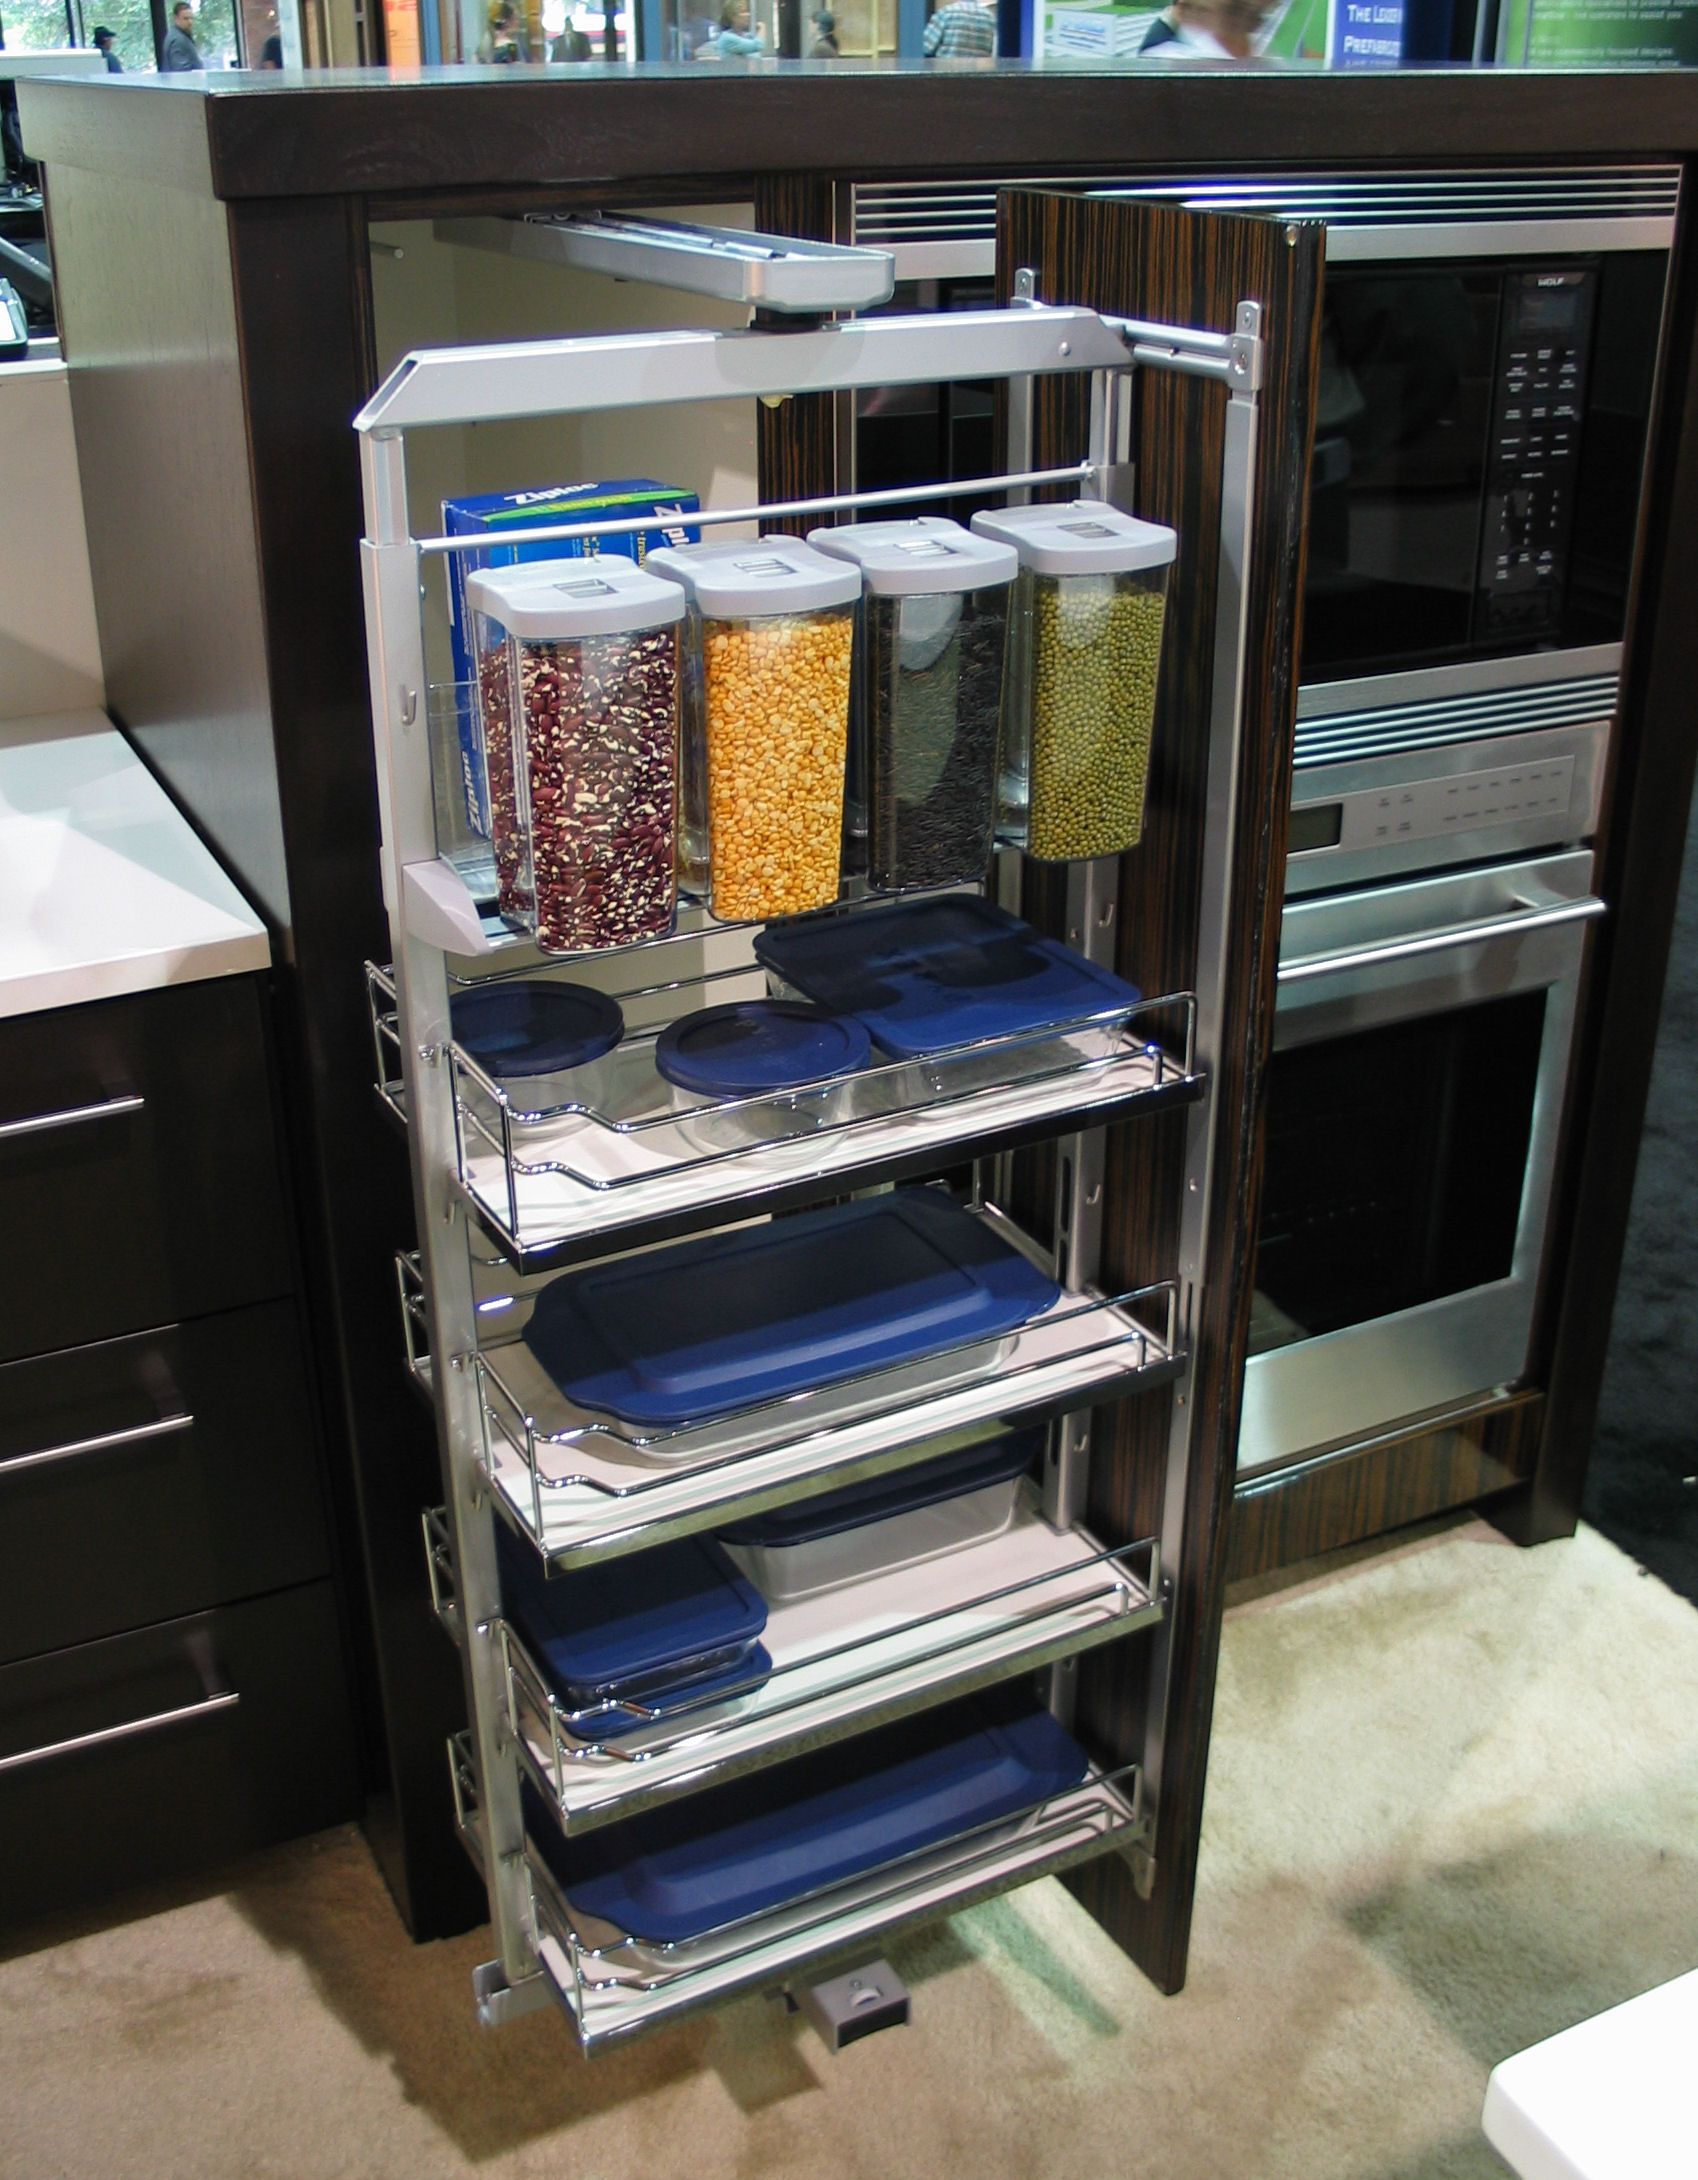 Kitchen Pull Out Drawers Qvc.com Shopping Pullout Pantry That Swings Clever Storage